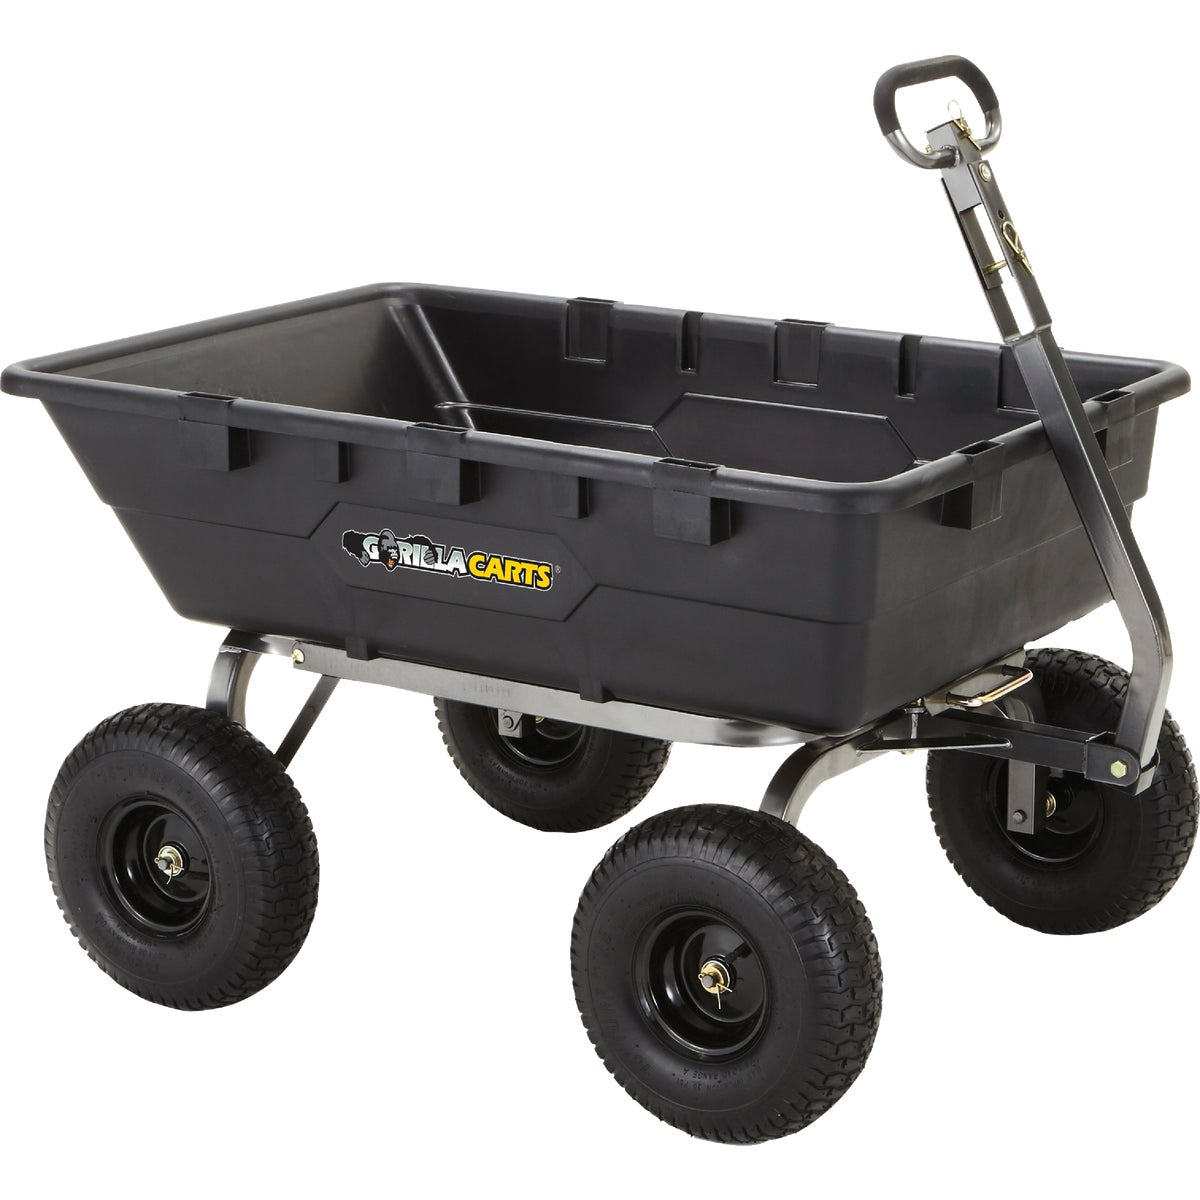 Tricam Industries Gorilla Carts Poly Tow Behind Cart Gor10